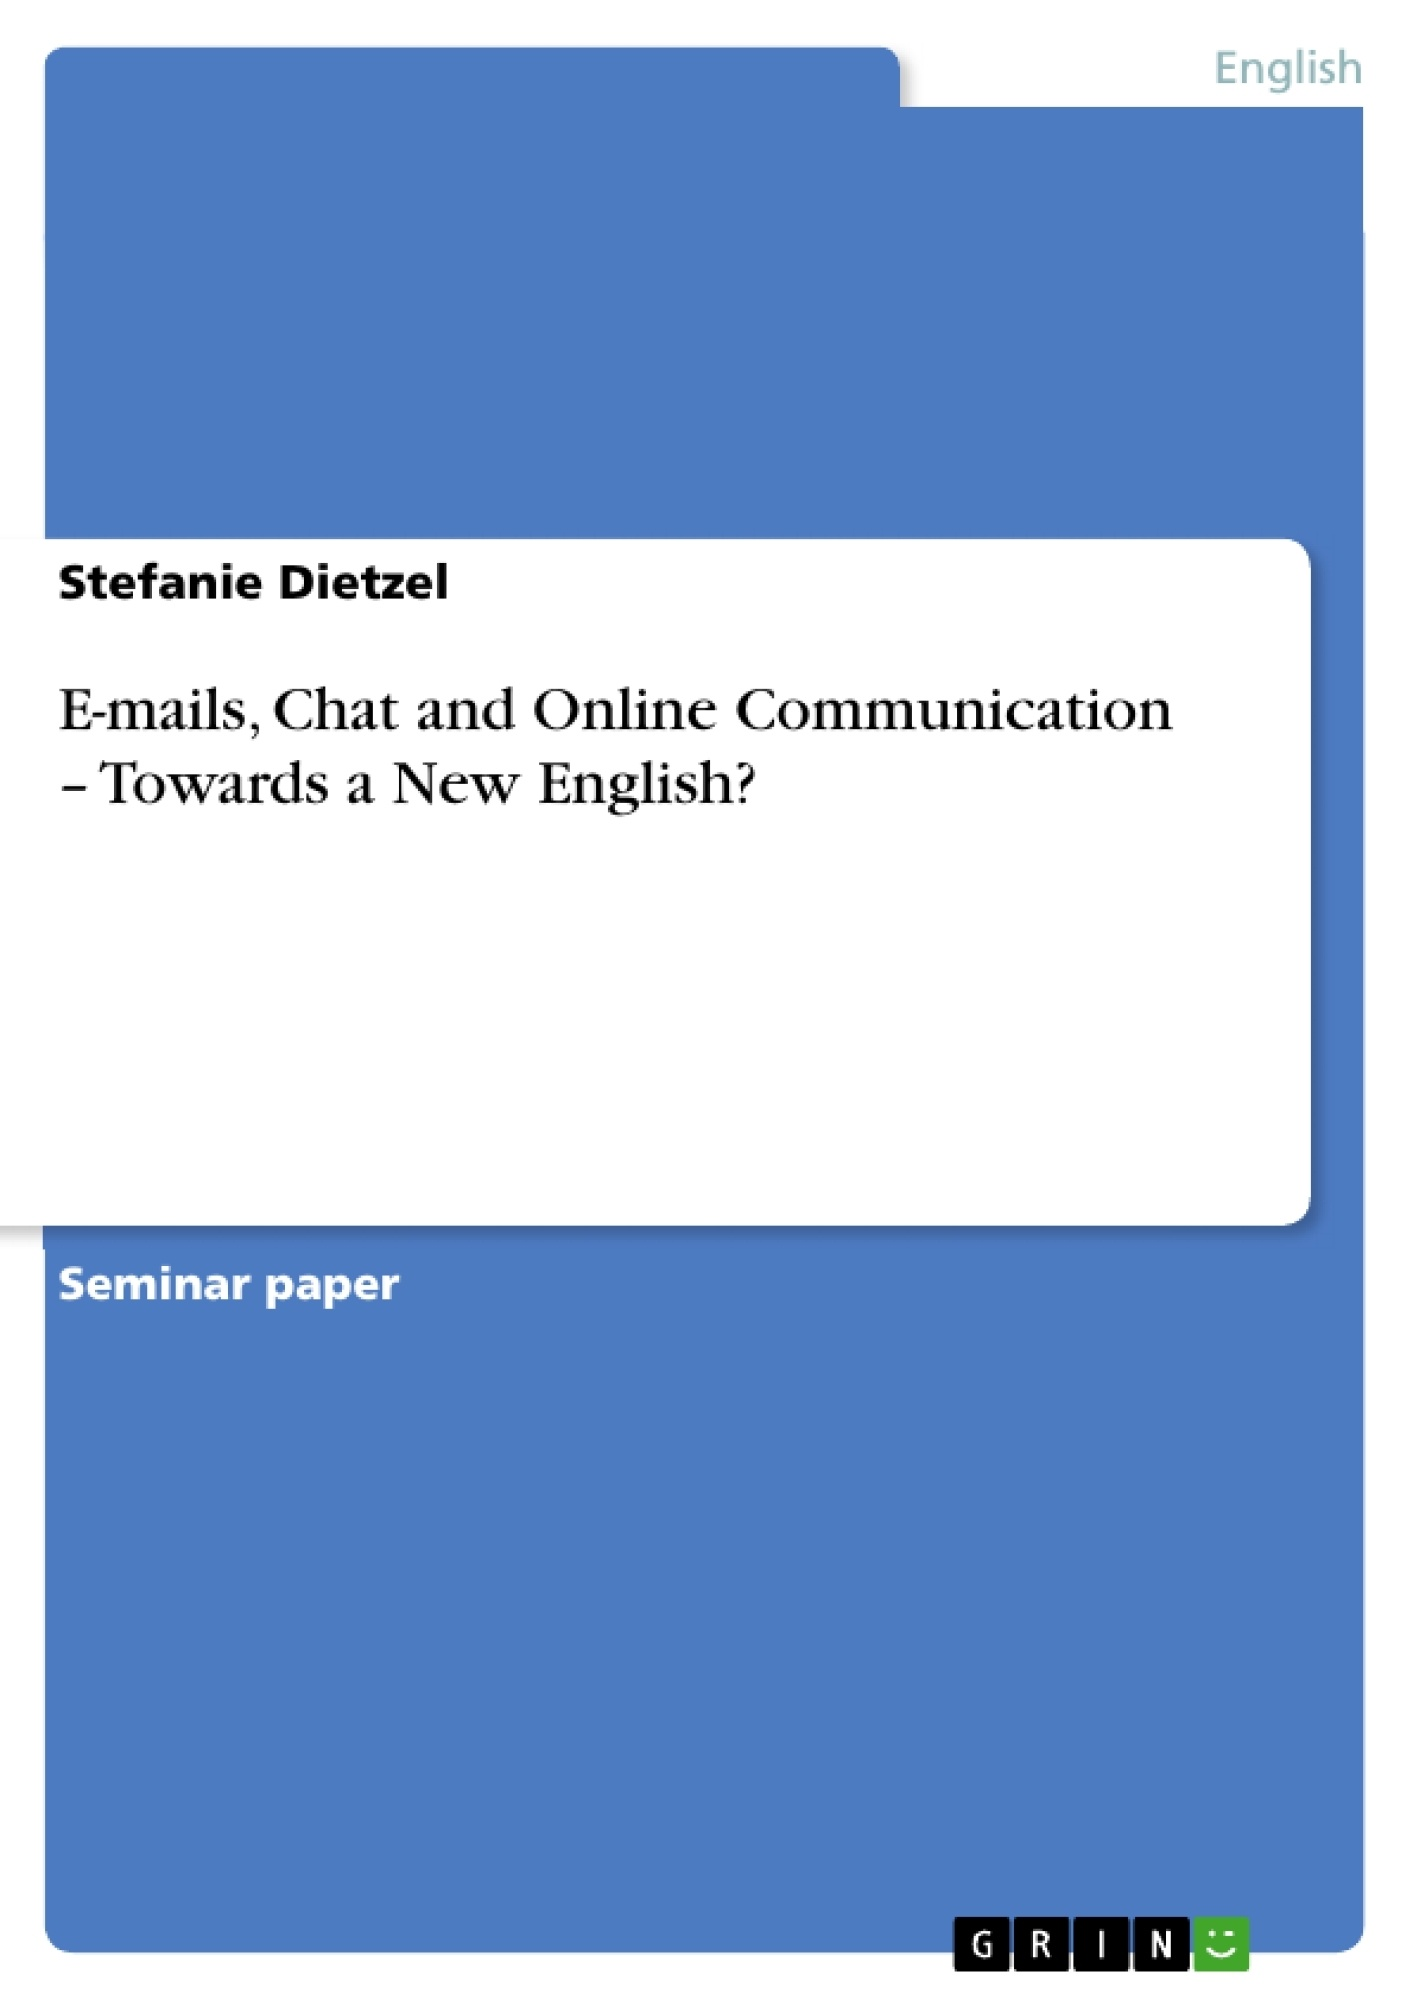 Title: E-mails, Chat and Online Communication – Towards a New English?